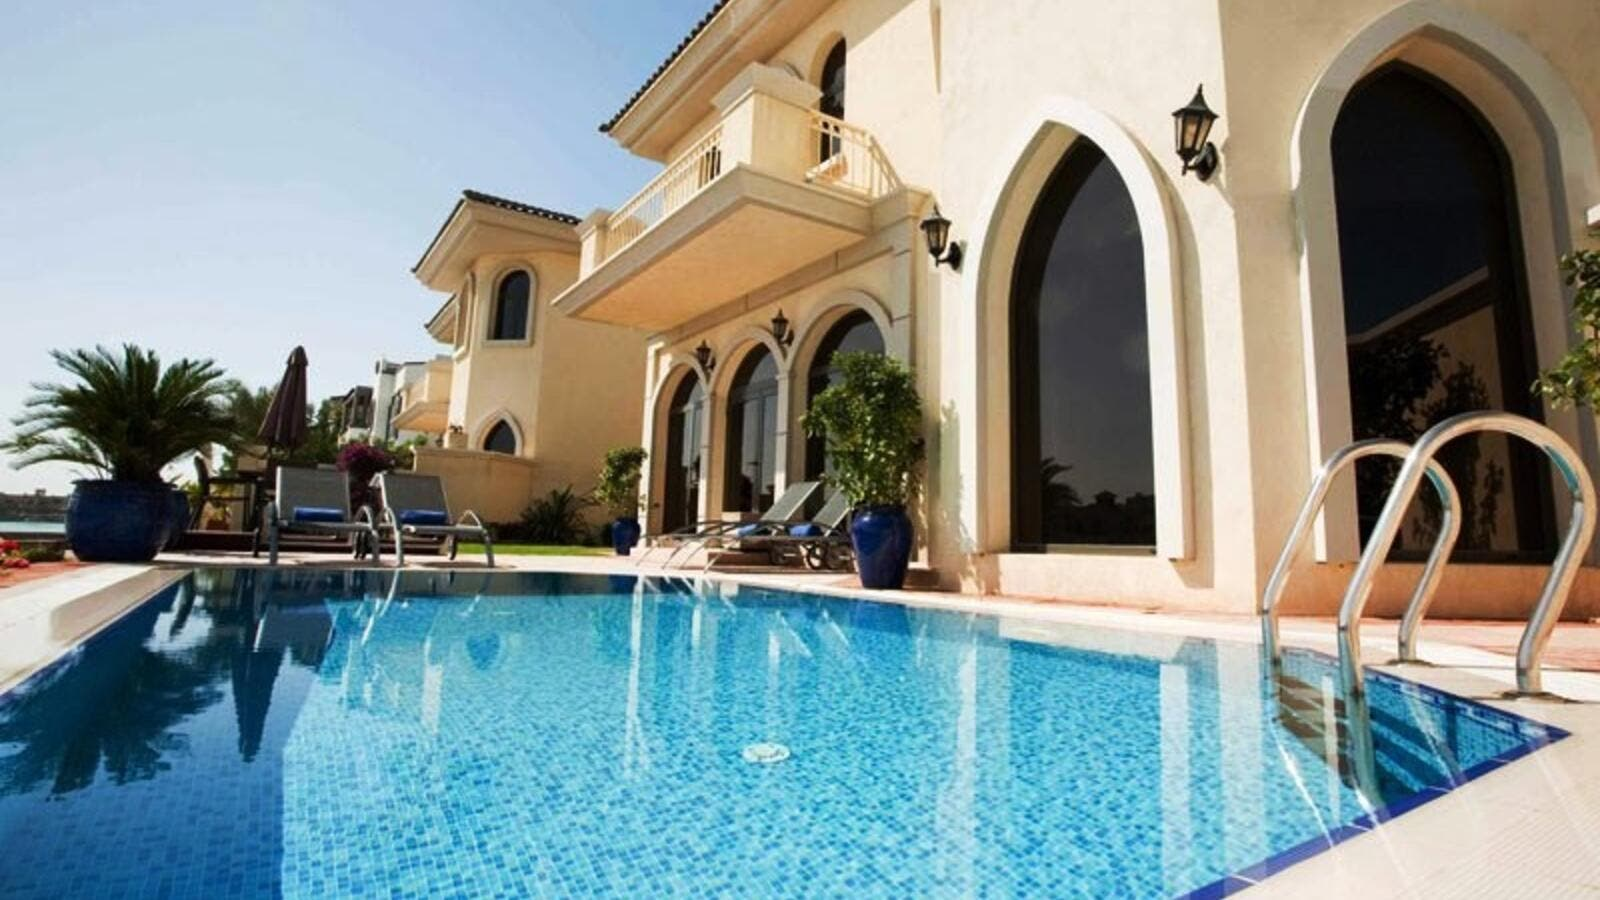 dubai introduces new regulations for holiday home rentals al bawaba rh albawaba com holiday villa dubai palm holiday villa rental in dubai